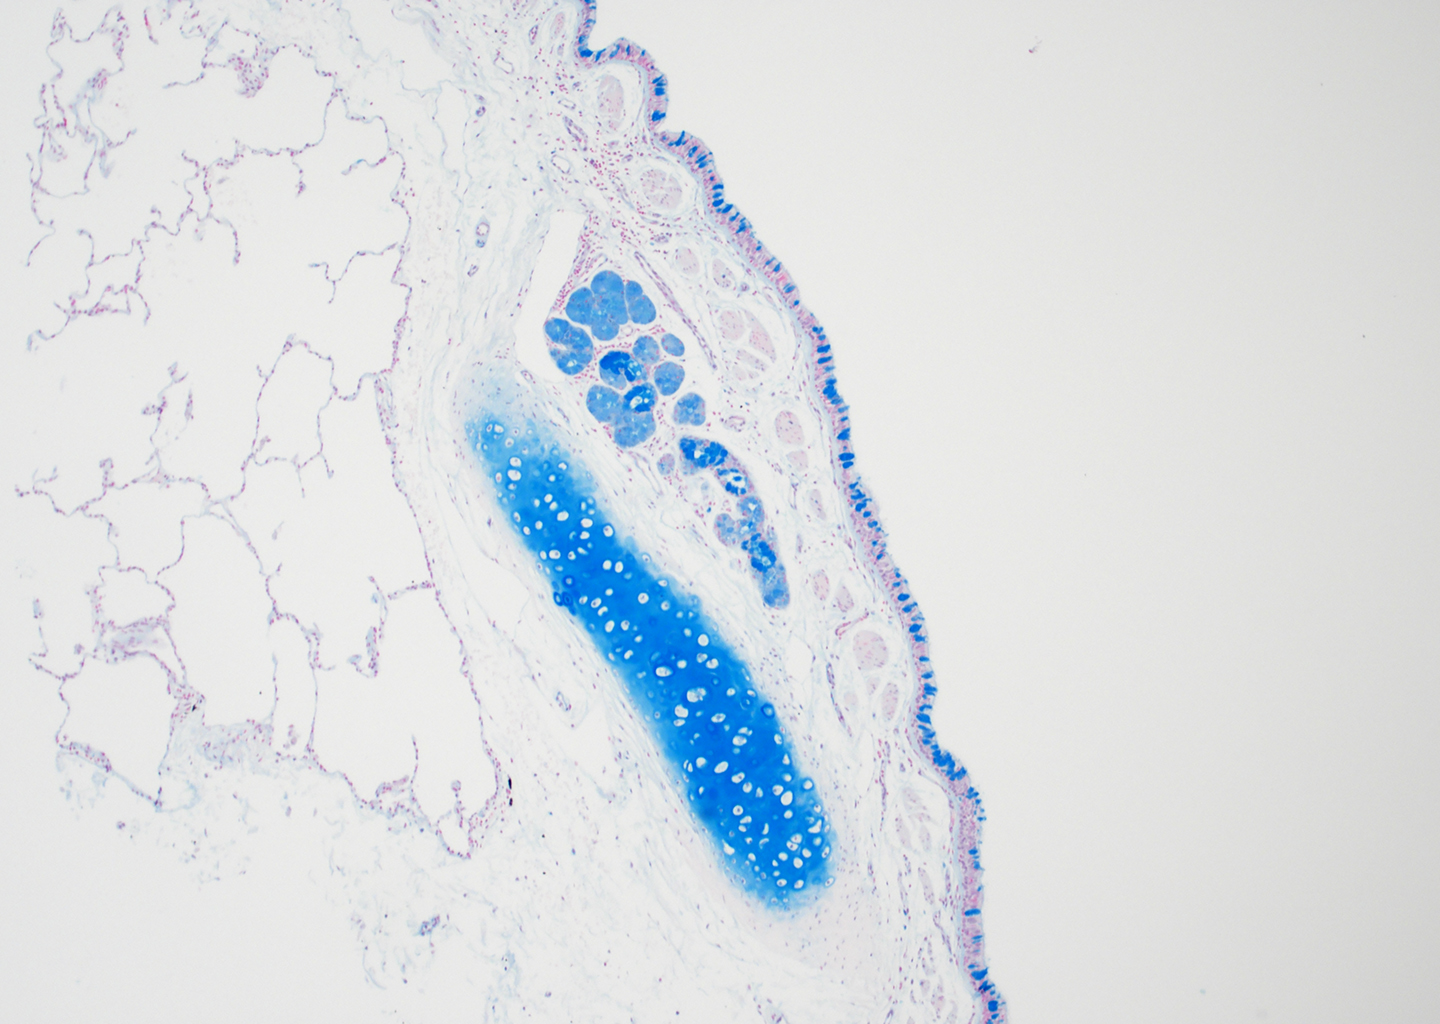 Alcian Blue Staining of 24 Year-Old Human Donor D071-17C2.20